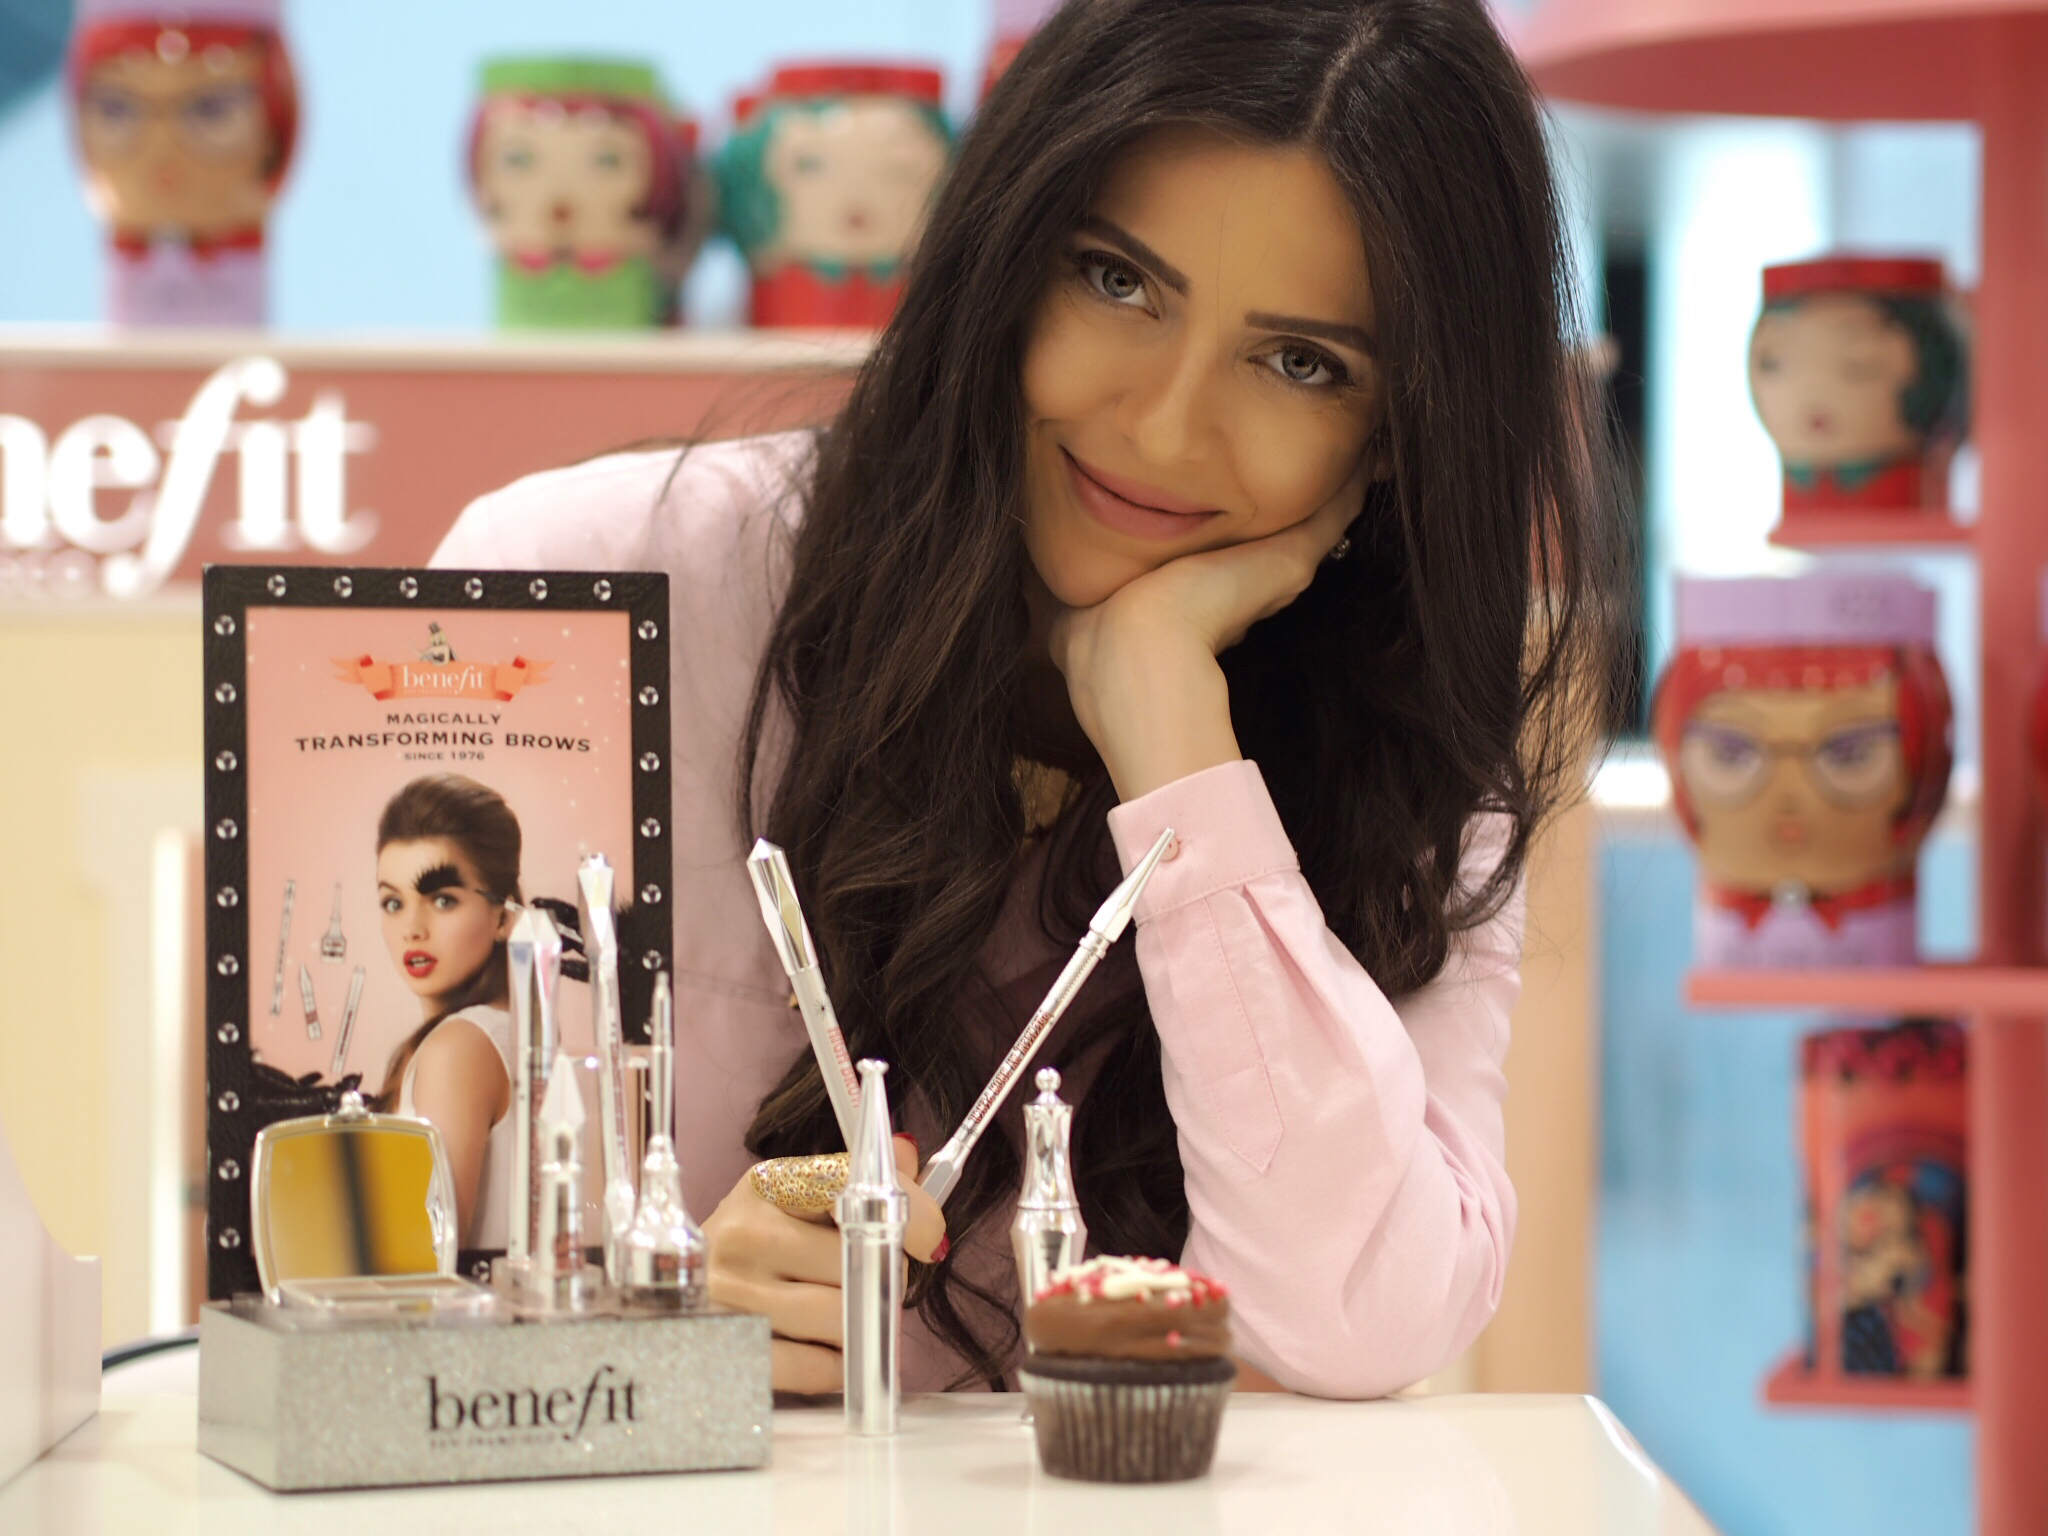 ivy says benefit cosmetics